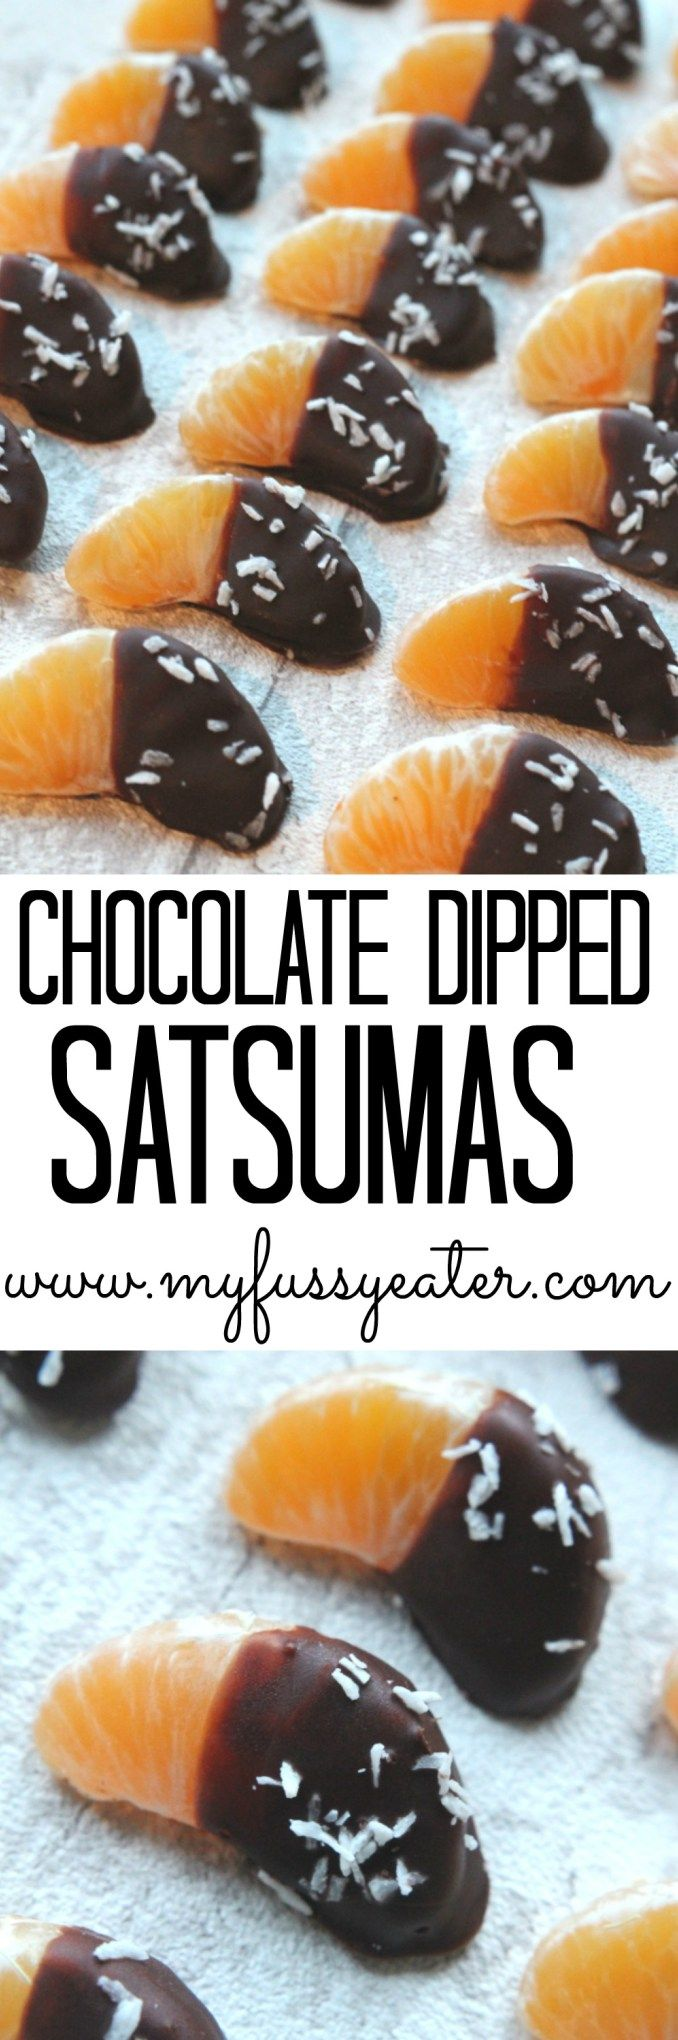 Satsumas dipped in dark chocolate and coconut oil and sprinkled with desiccated coconut. A healthy, low sugar snack for kids and adults alike!